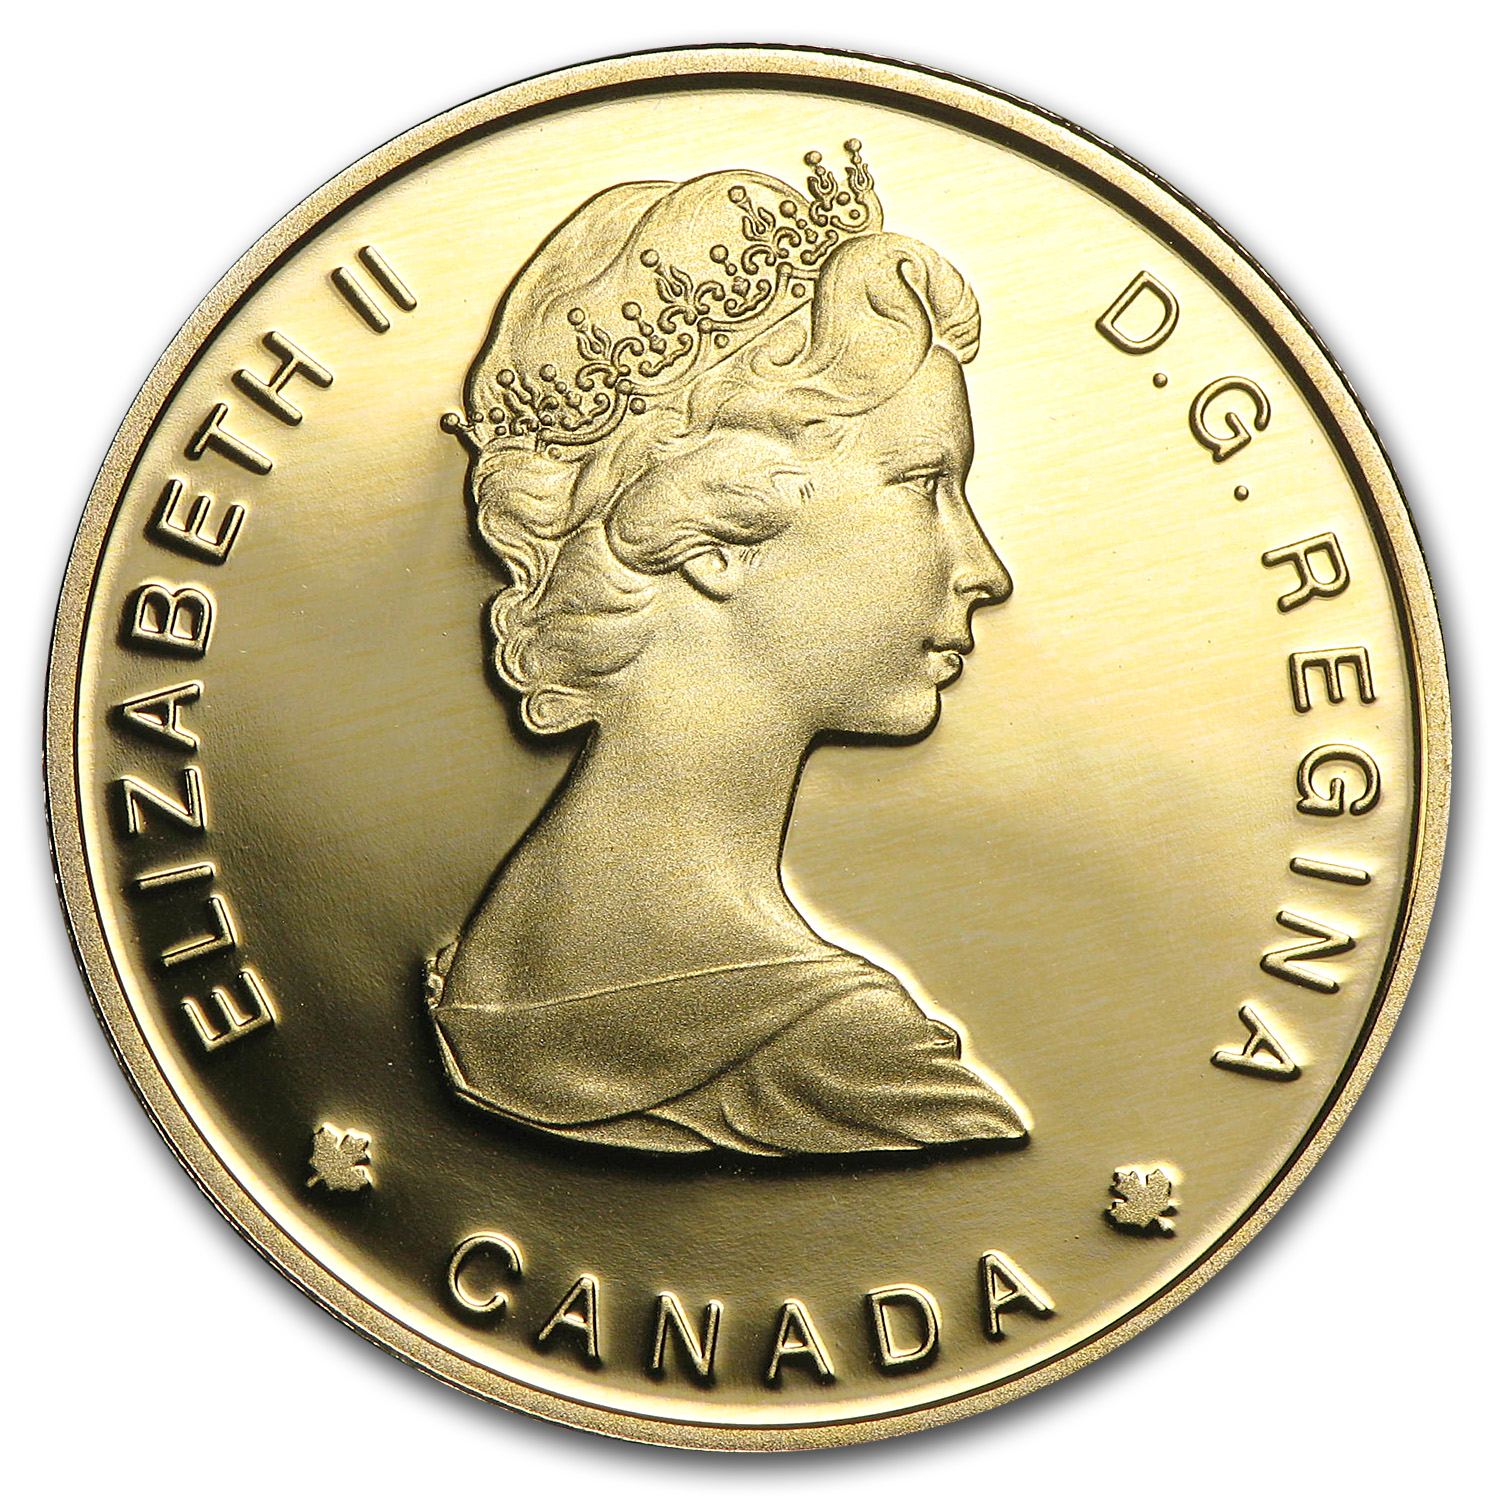 1989 1/4 oz Gold Canadian $100 Sainte-Marie Proof